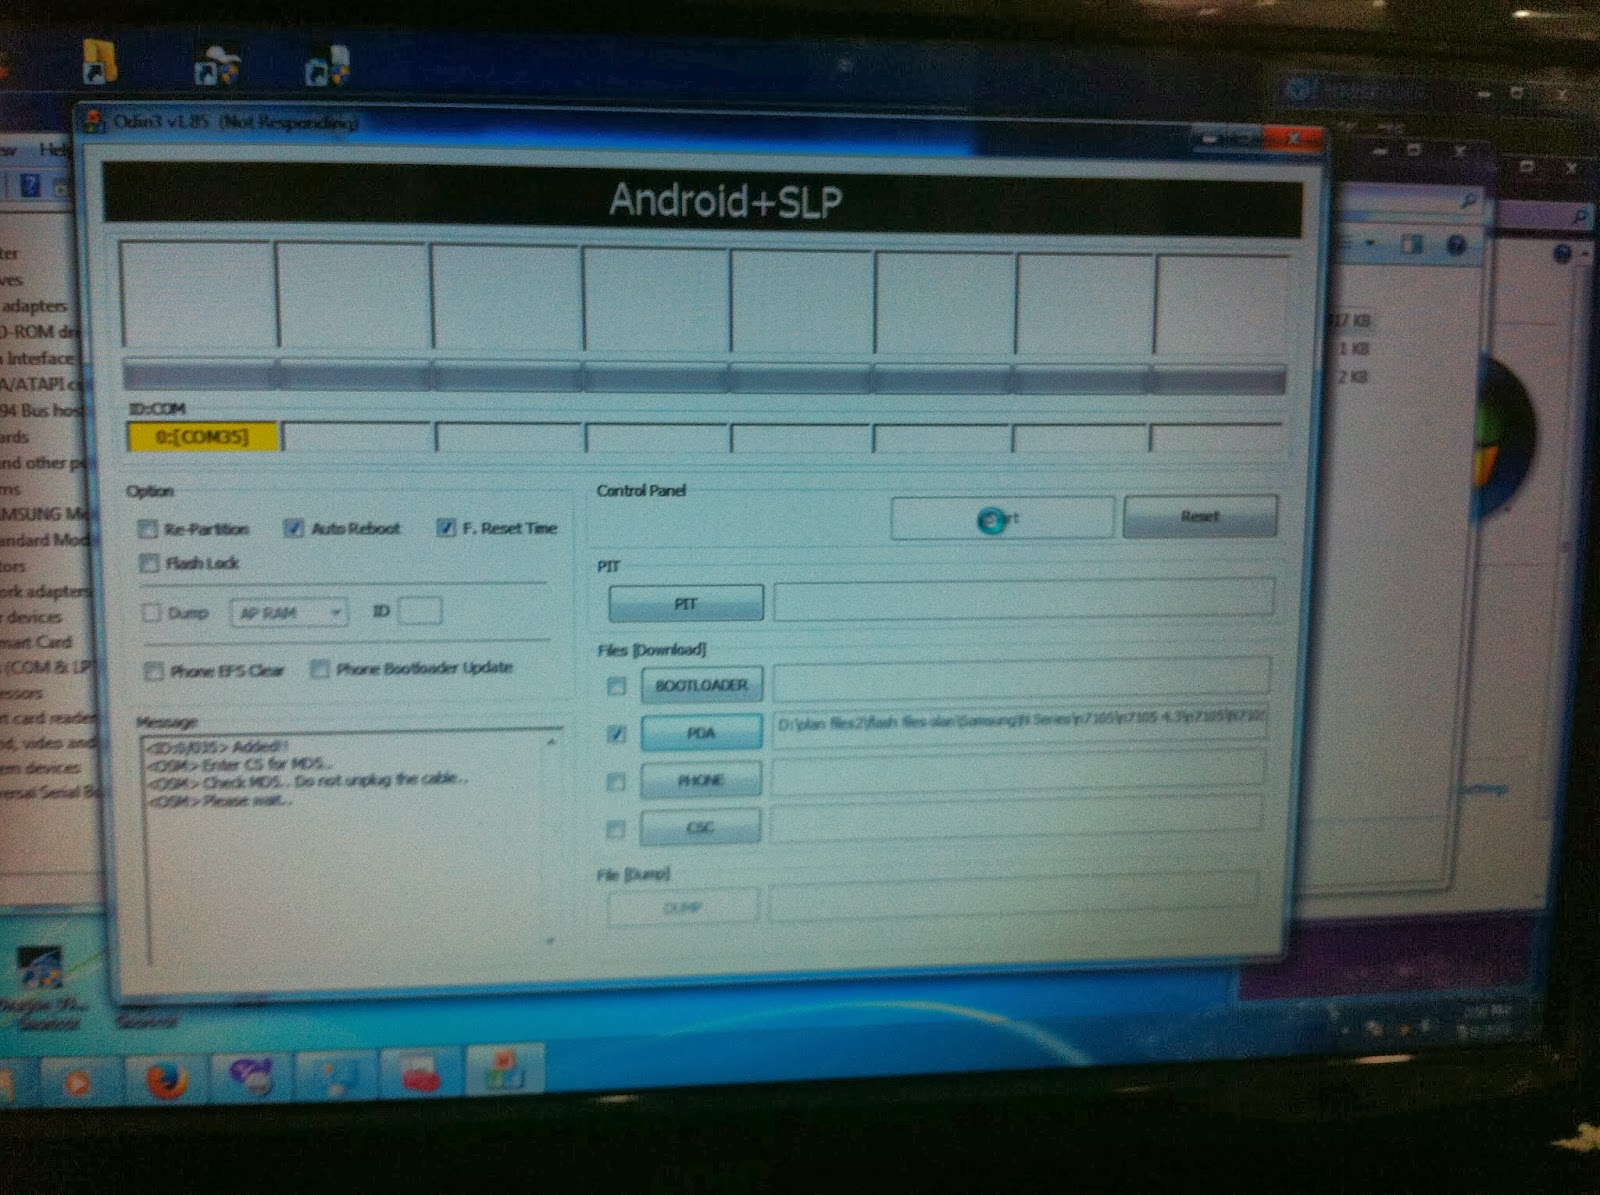 7boxup ultimate gadget store: N7105 DEAD BOOT